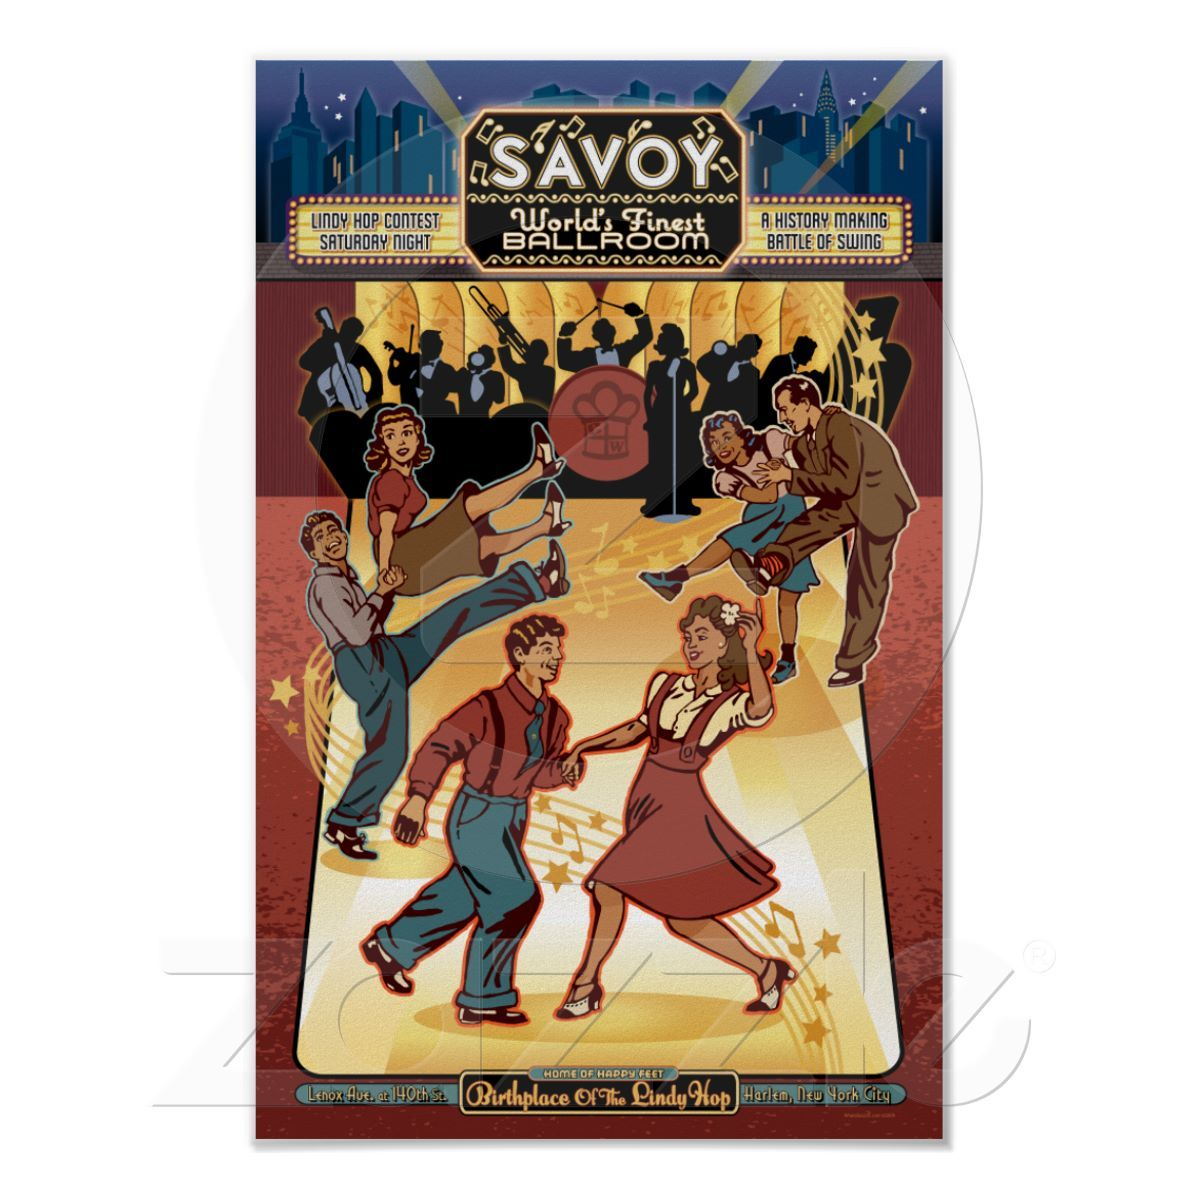 This vintage advertising poster pays tribute to the fabulous historical Savoy Ballroom in Harlem, New York City.